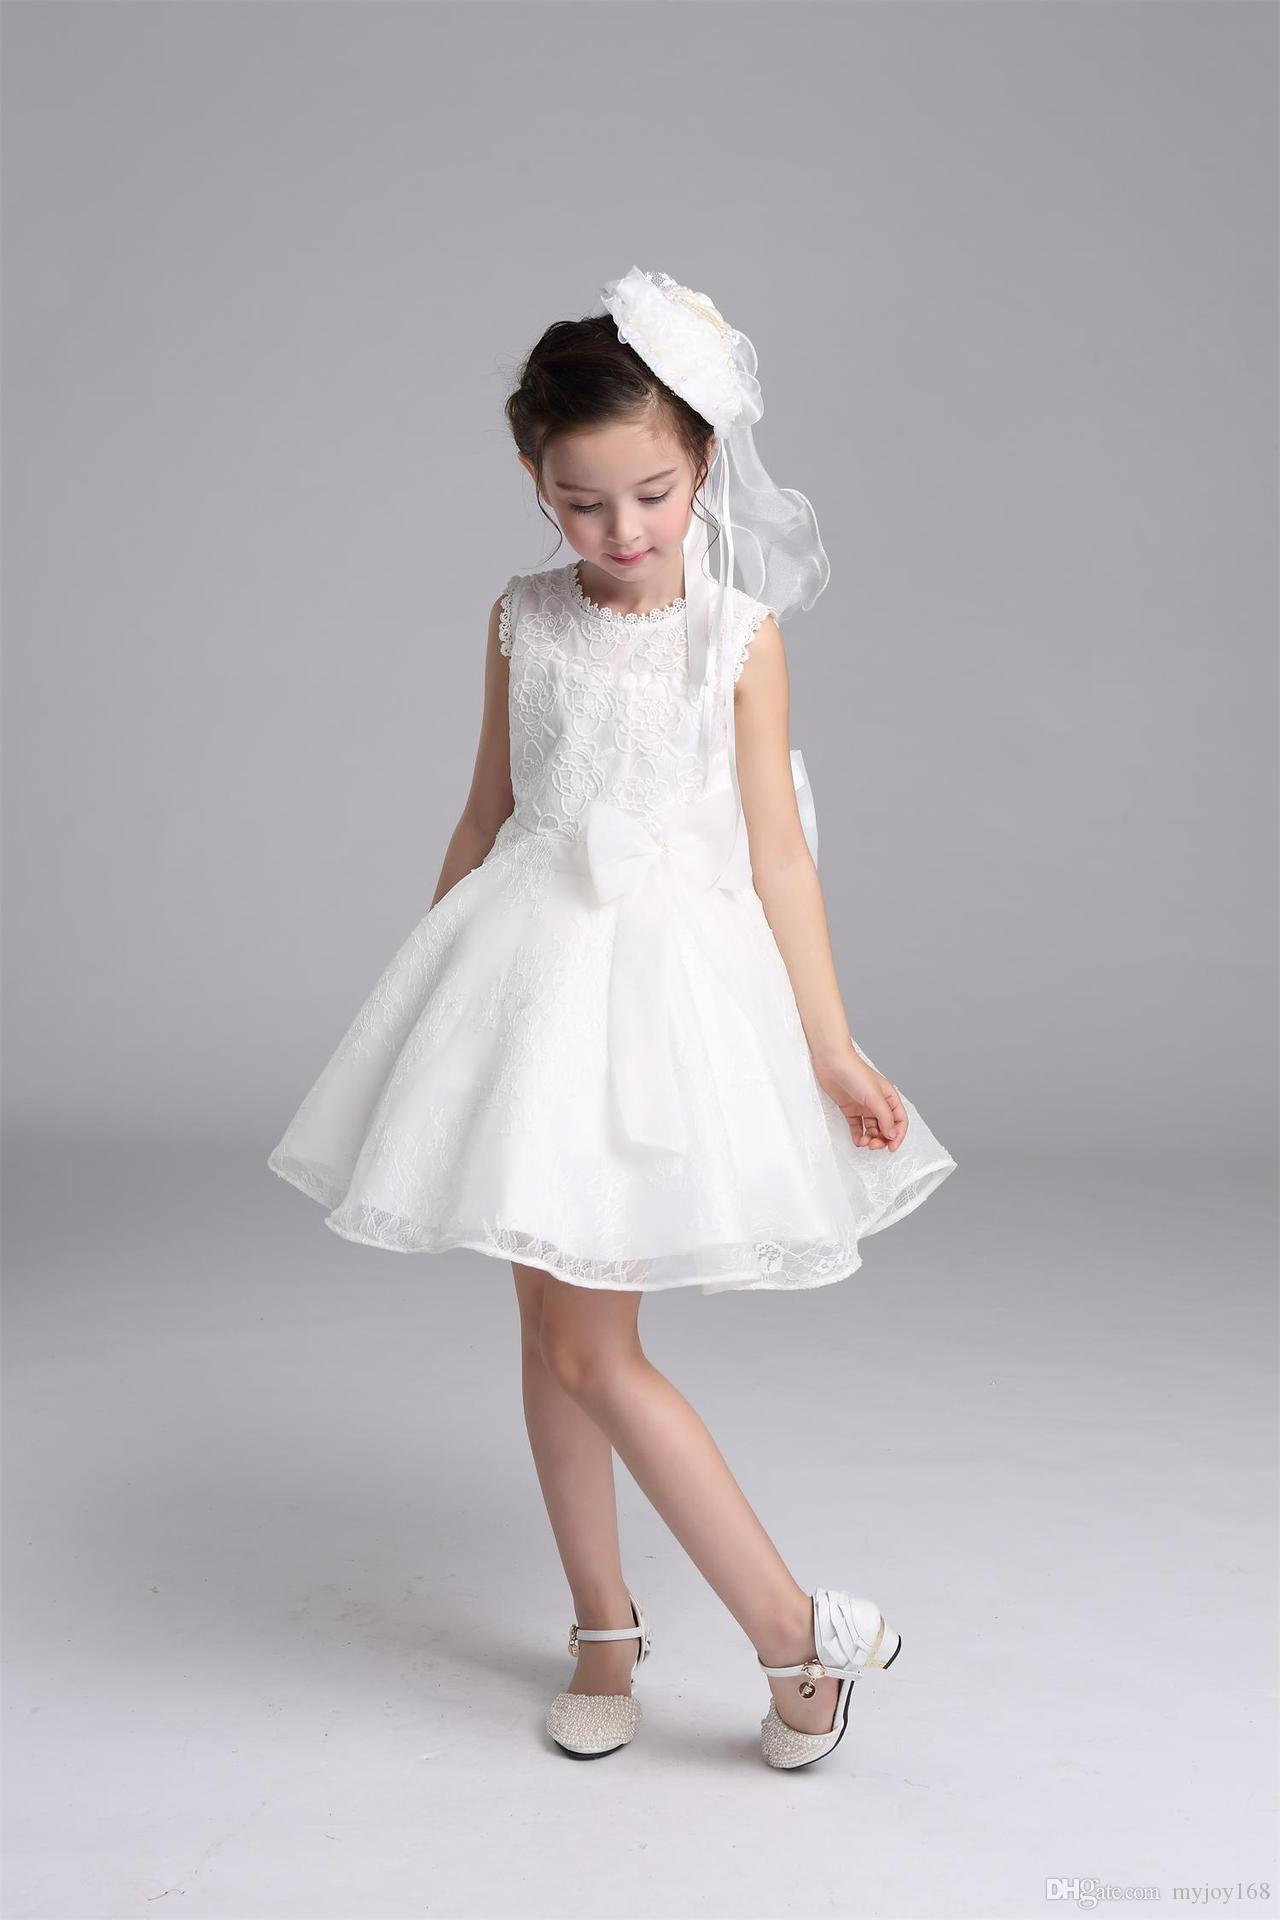 White Flower Girl Dresses For Baby Lauren Goss